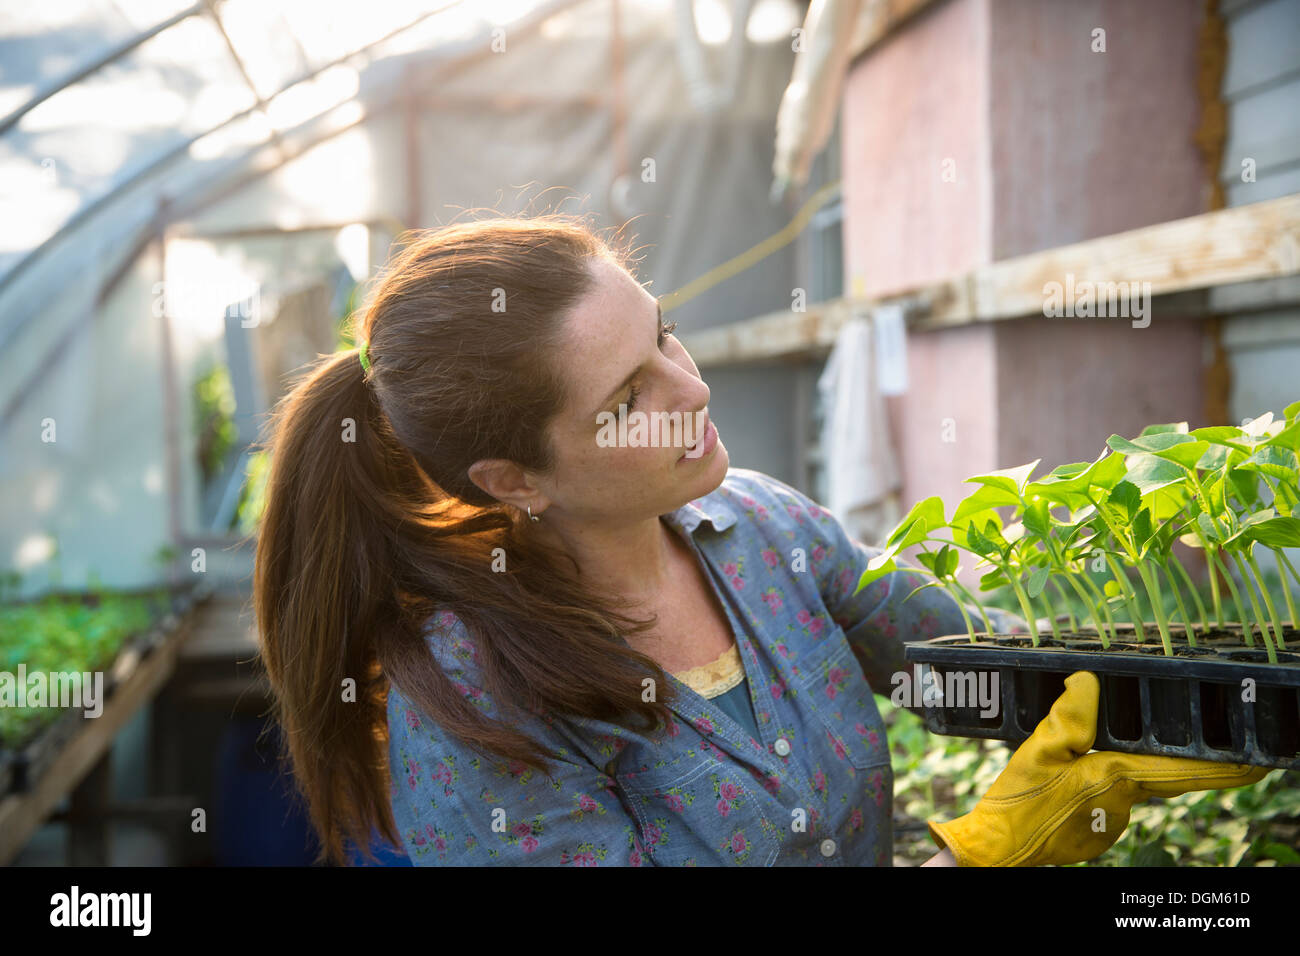 On the farm. A woman carrying trays of young organically grown seedlings, bean plants, out of a glasshouse. Stock Photo